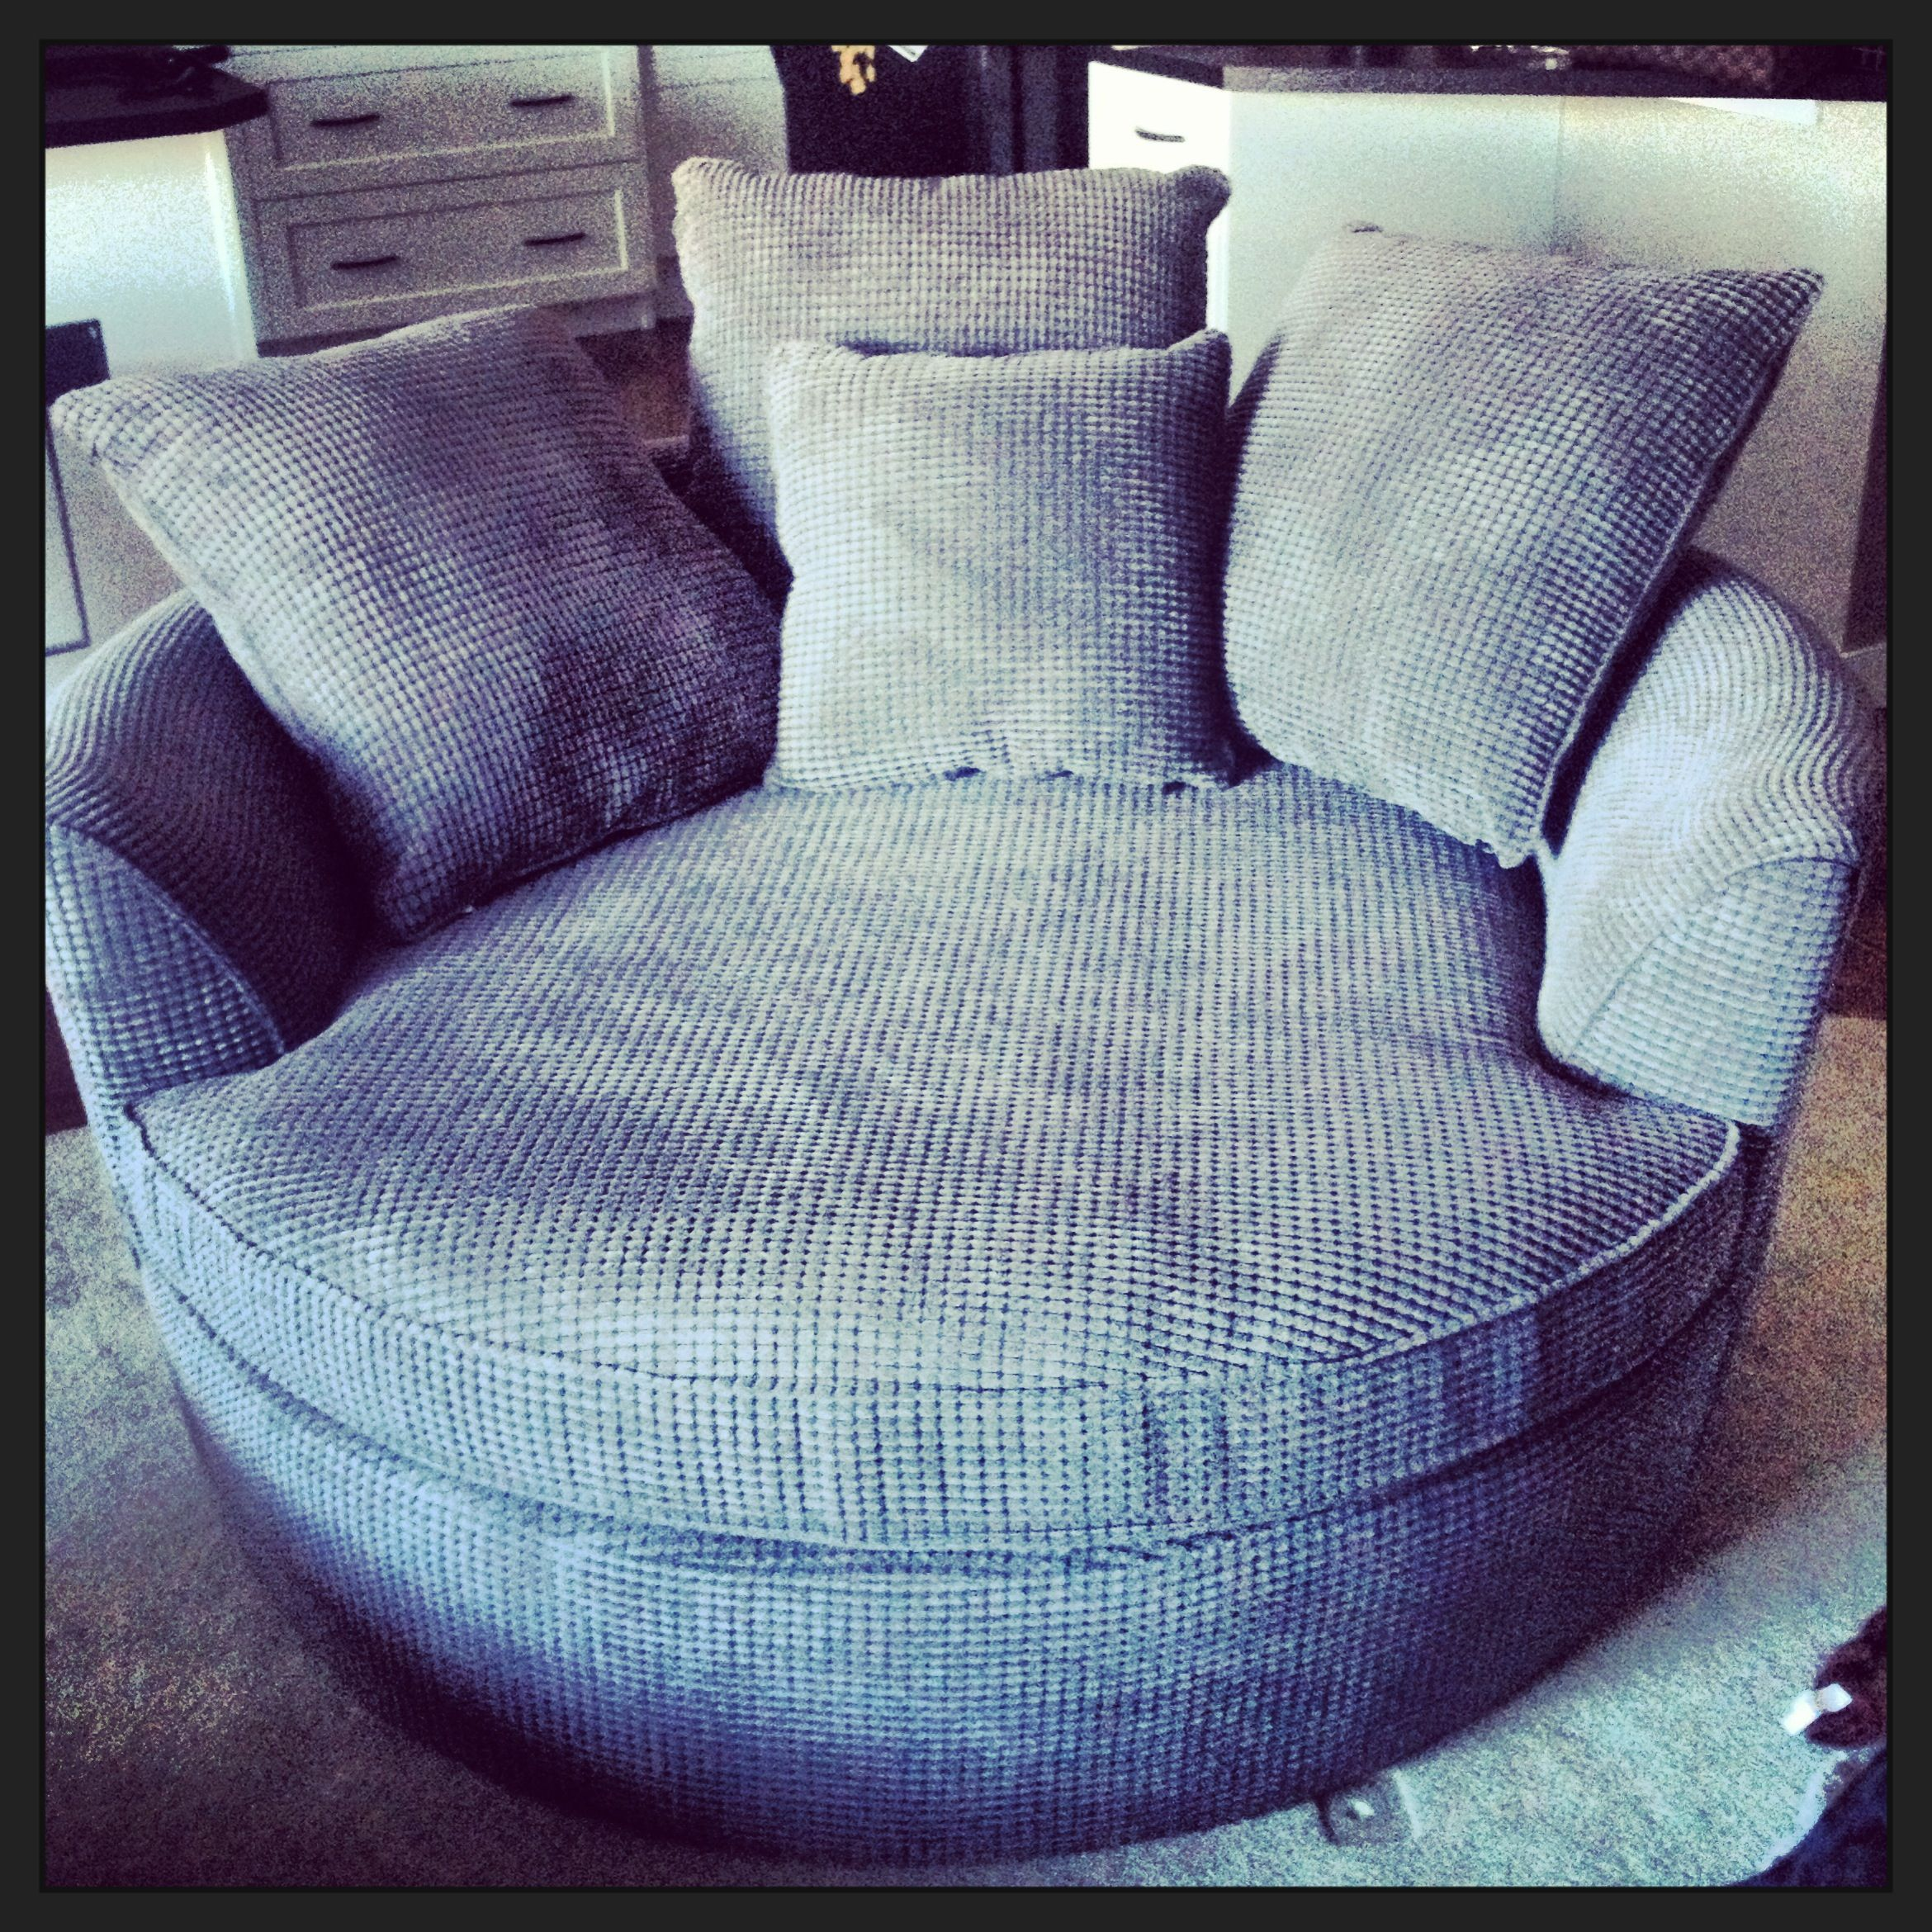 Nest chair at Urban Barn! Just picked her up!! Love